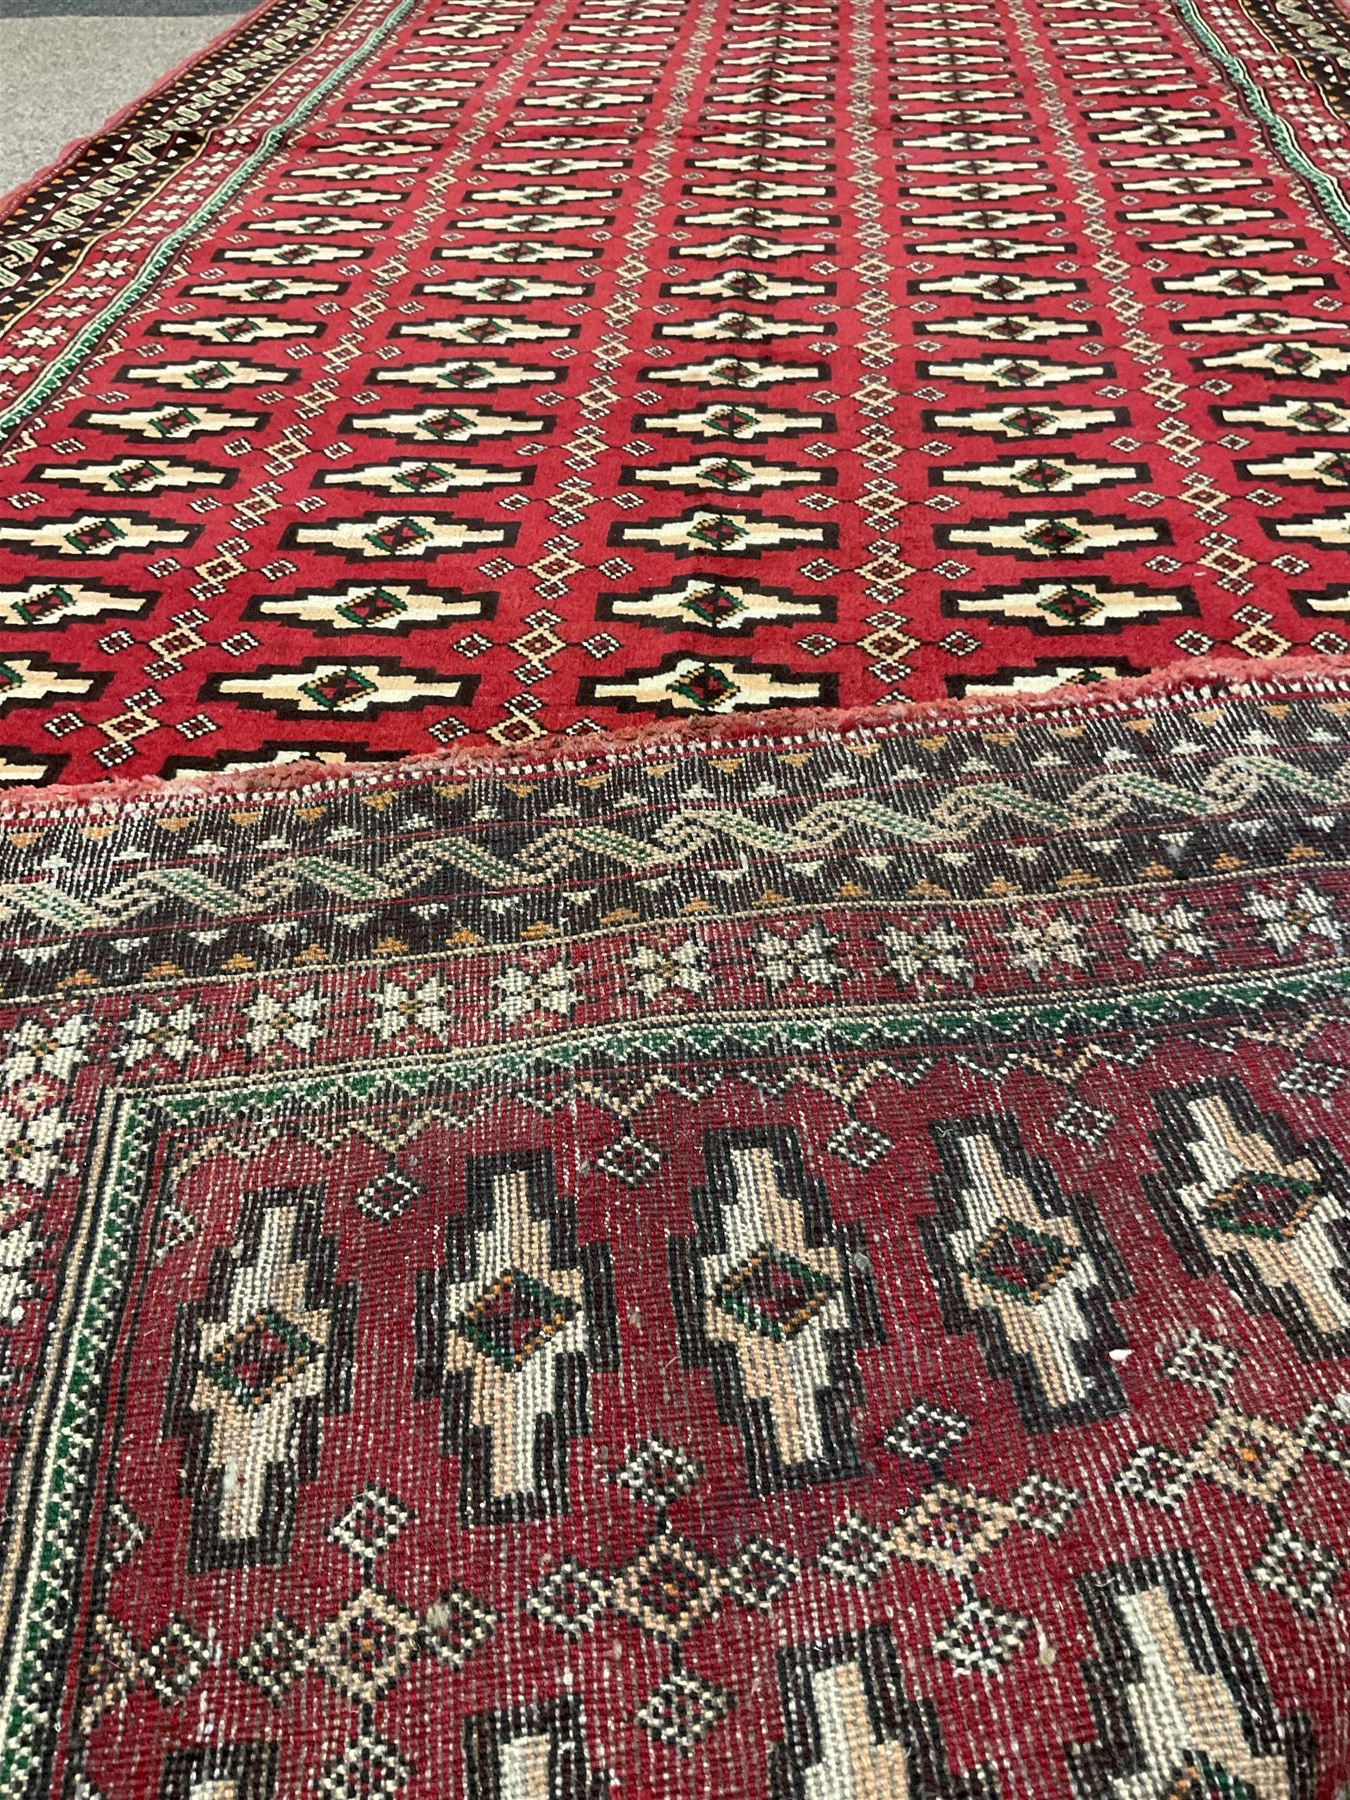 Persian red ground rug - Image 3 of 3